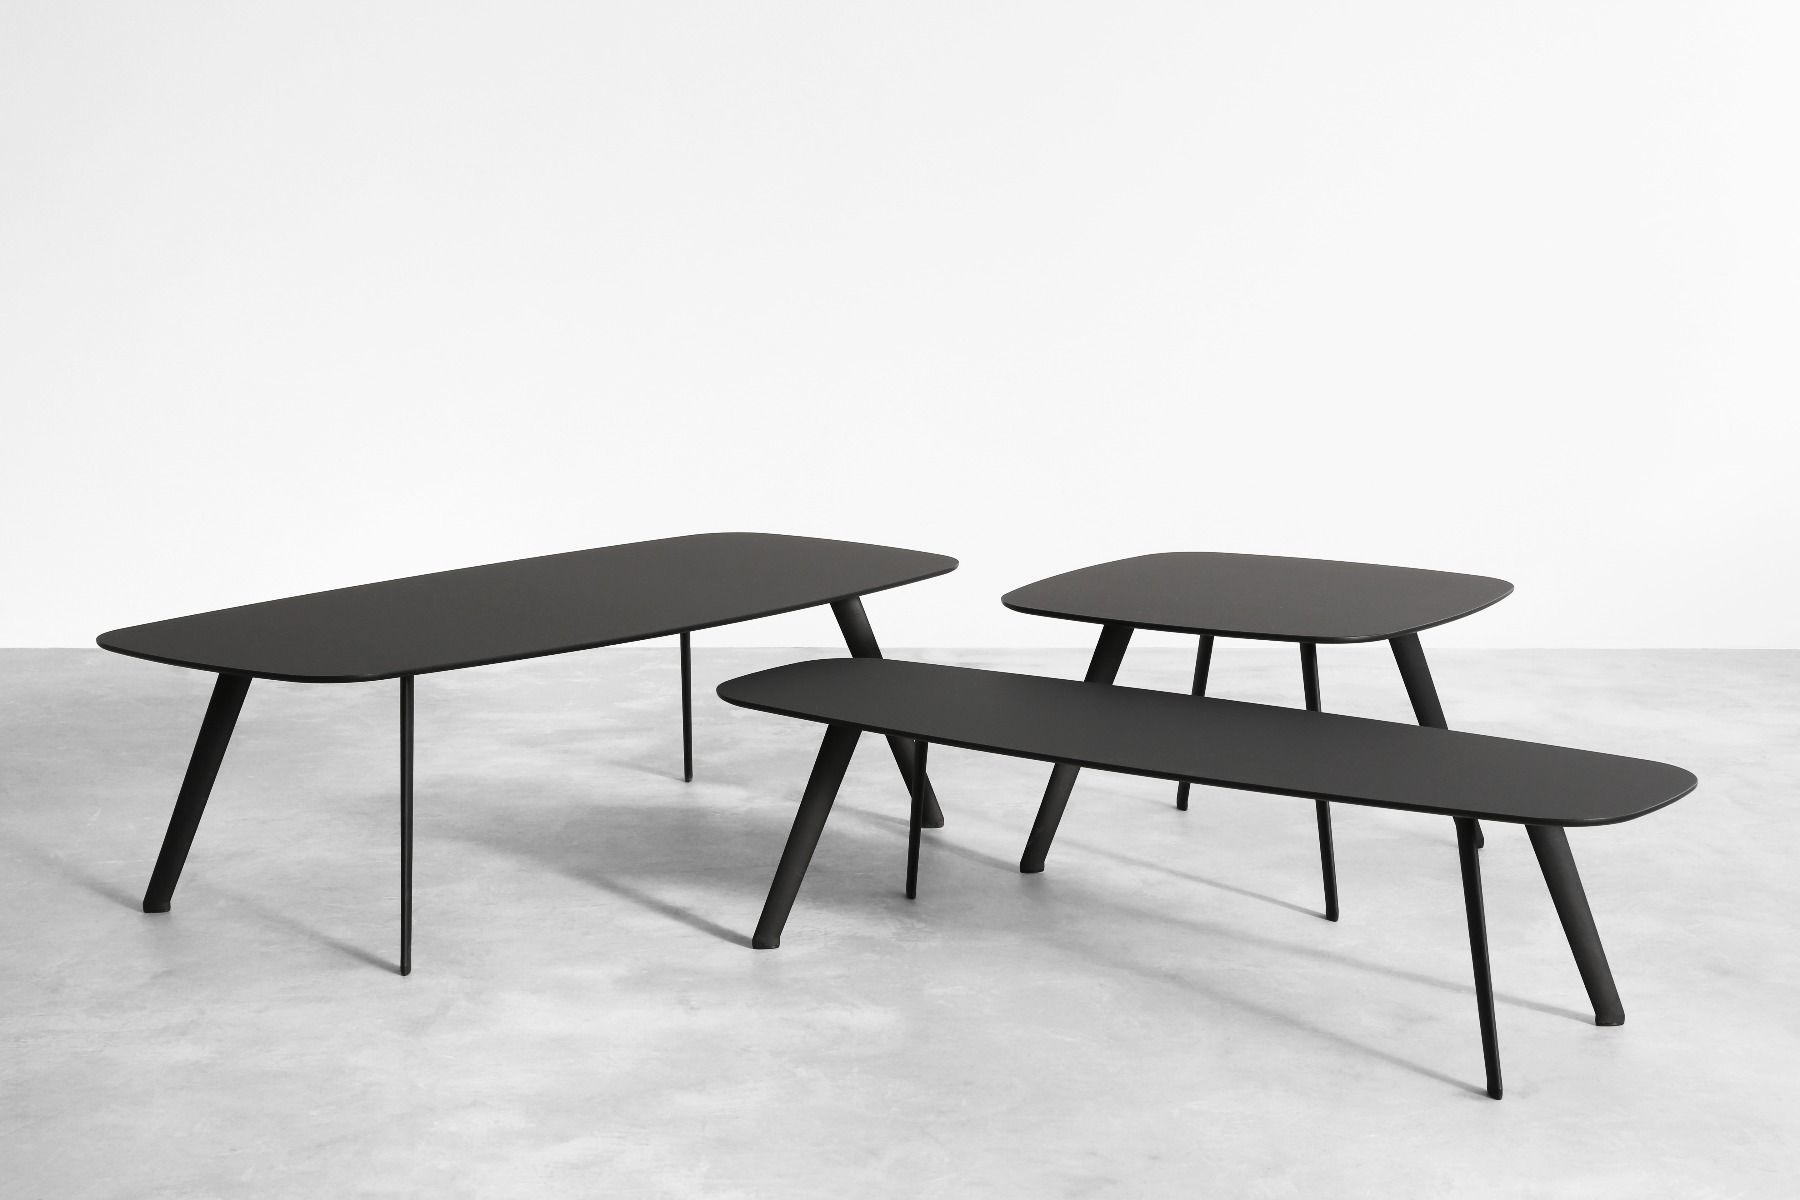 Stua Solapa Tables-Fenix showing three sizes